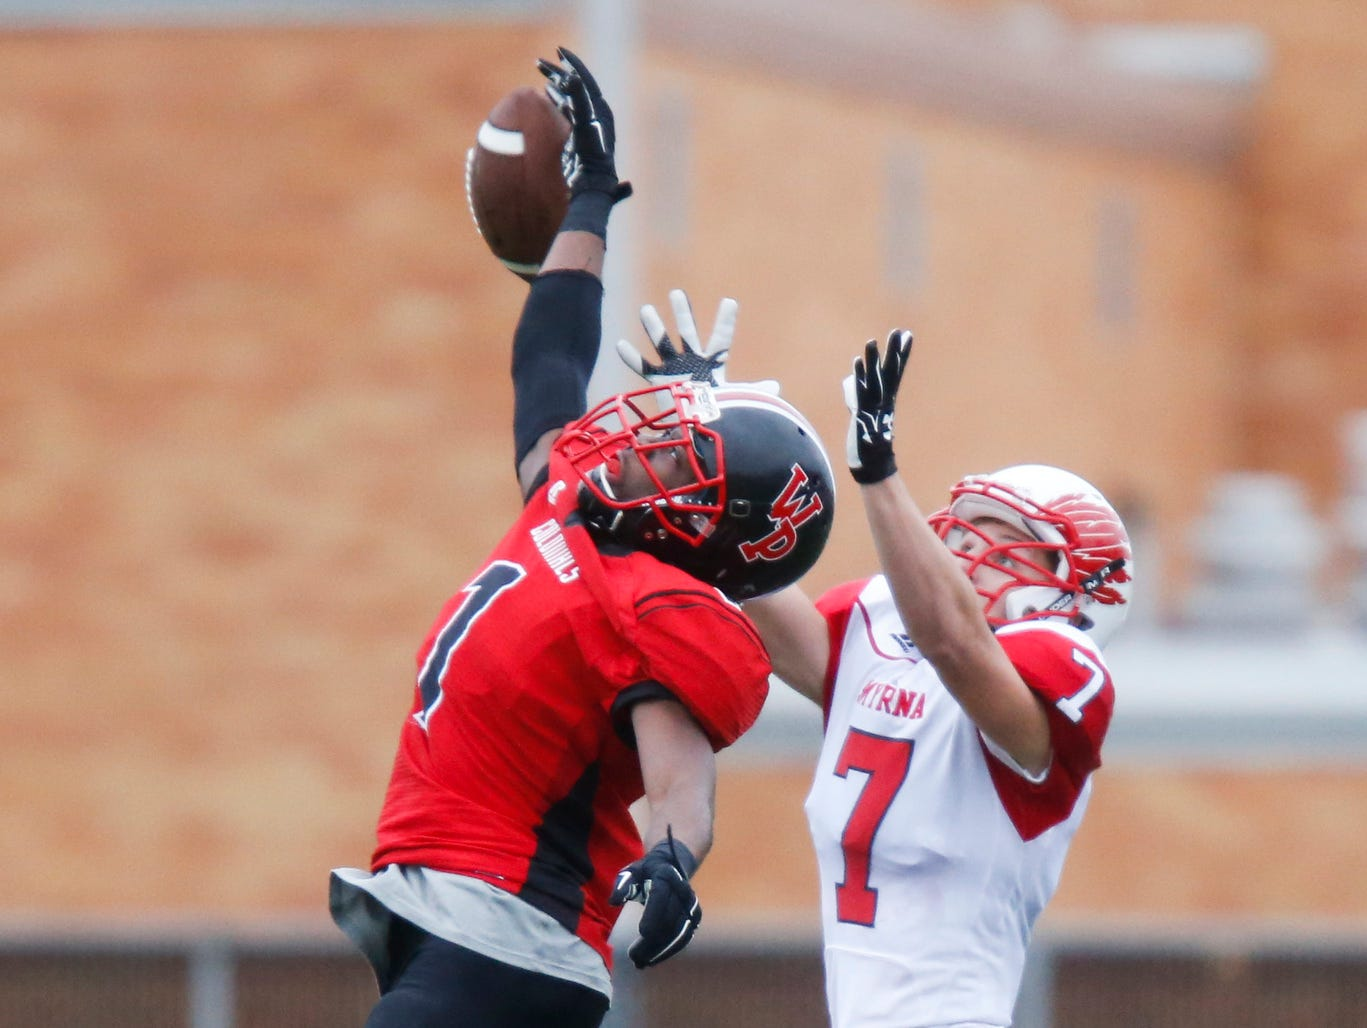 William Penn's Zach Burton (left) defends a pass meant for Smyrna's Brandon Bishop in the fourth quarter of Smyrna's 30-13 win in a semifinal of the DIAA Division I state tournament at Bill Cole Stadium Saturday.